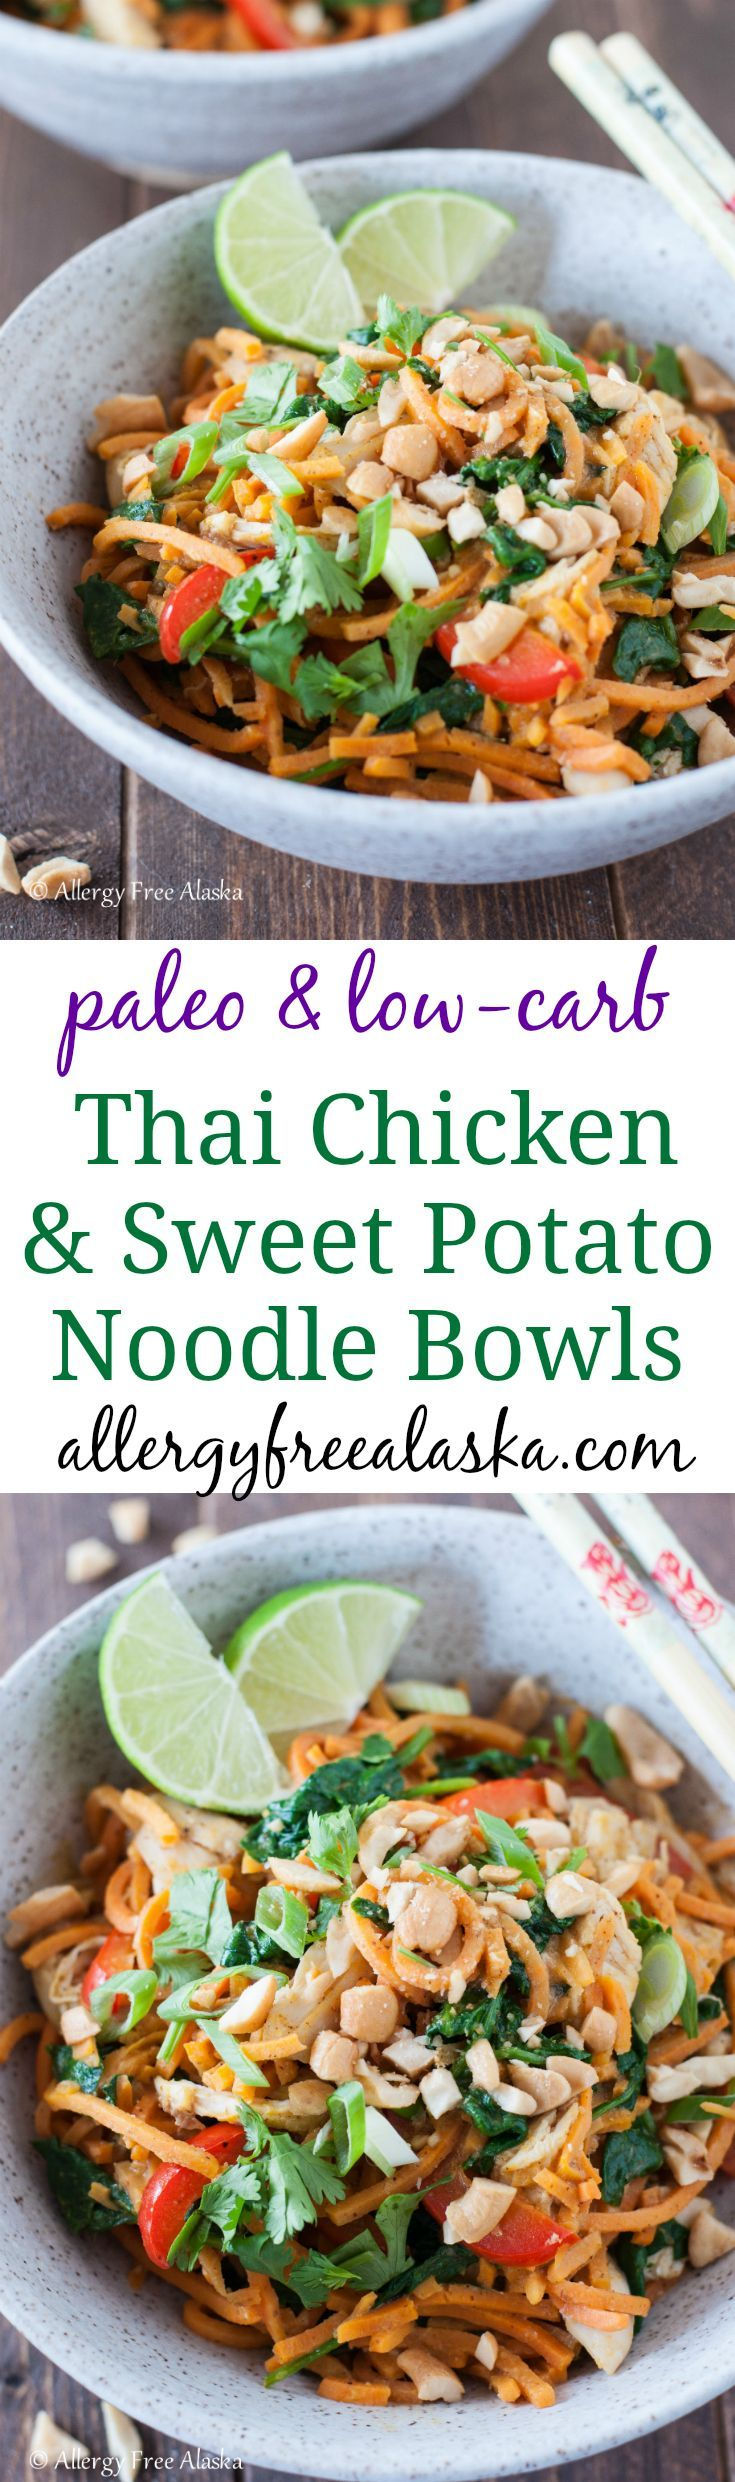 "These Thai Chicken & Sweet Potato Noodles Bowls are a delicious way to give into your Thai craving while staying low-carb. Spiralized sweet potato ""noodles"" take the place of rice noodles, and are covered in a spicy satay-like sauce. Add in some fresh veggies and tender chicken, and you have a perfect meal for any night of the week! {gluten-free, Paleo, soy-free & can be made vegan with 2 tweaks!}"